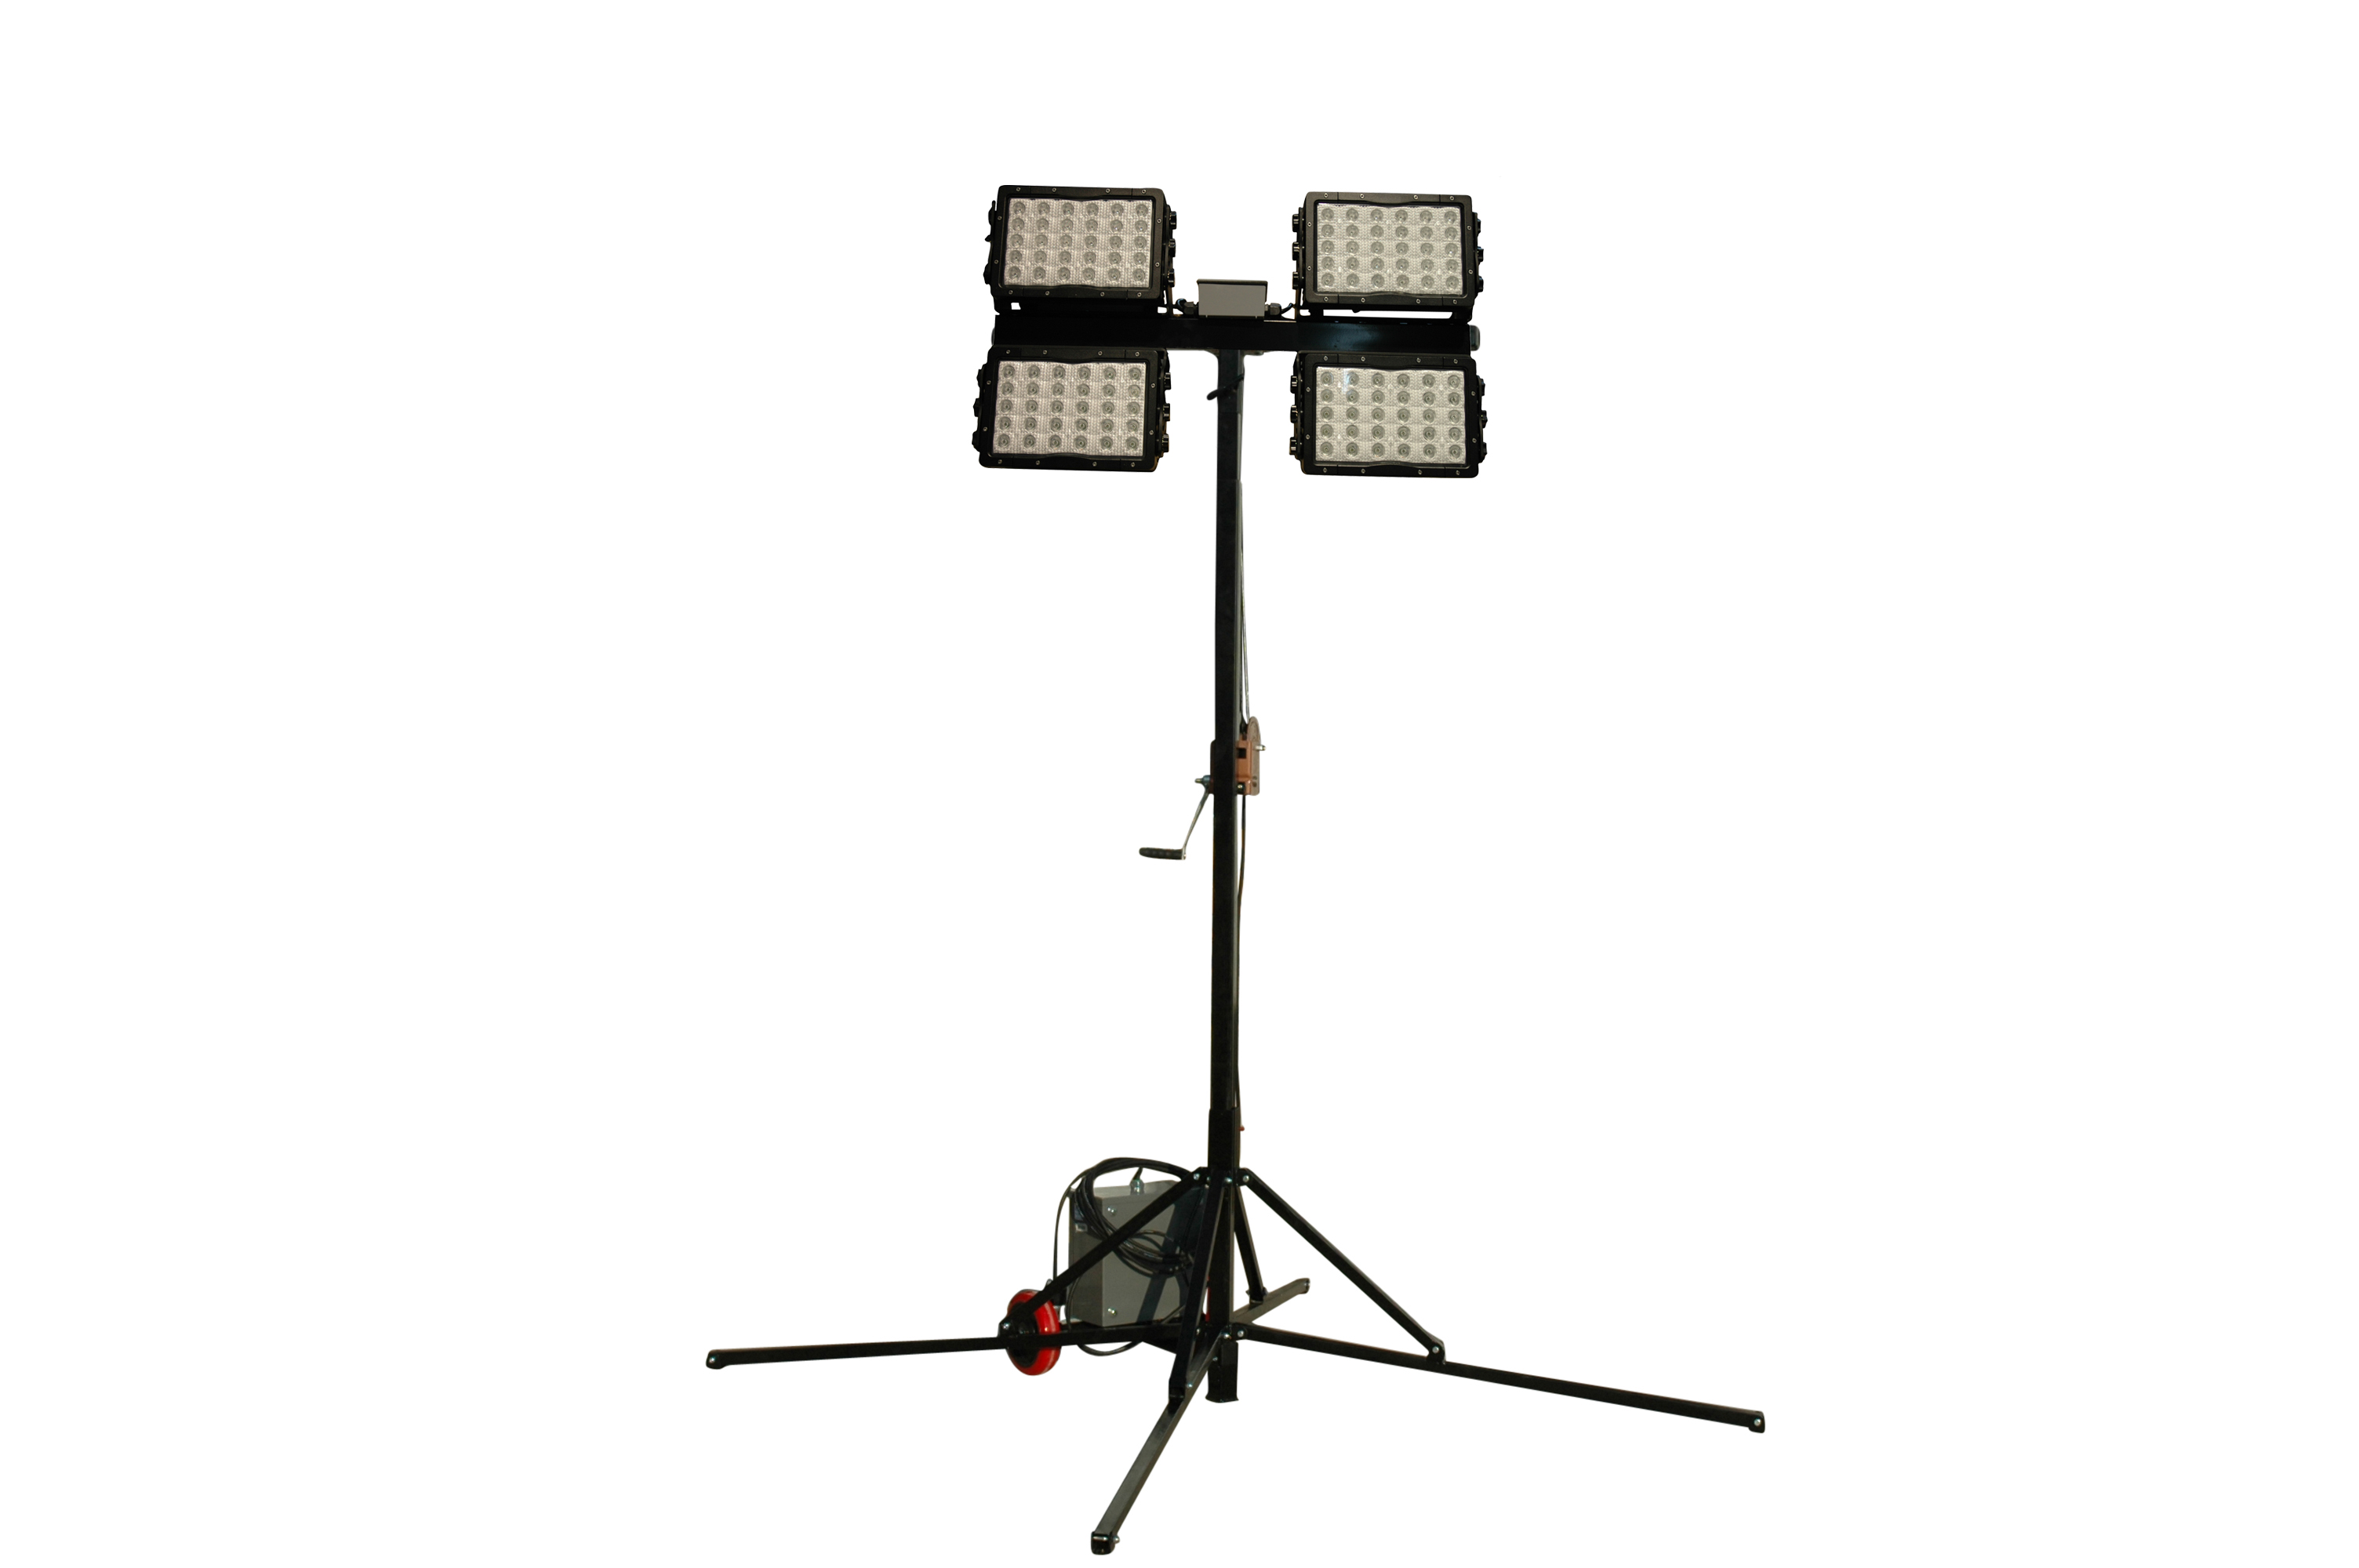 New Light Tower From Magnalight Provides High Output